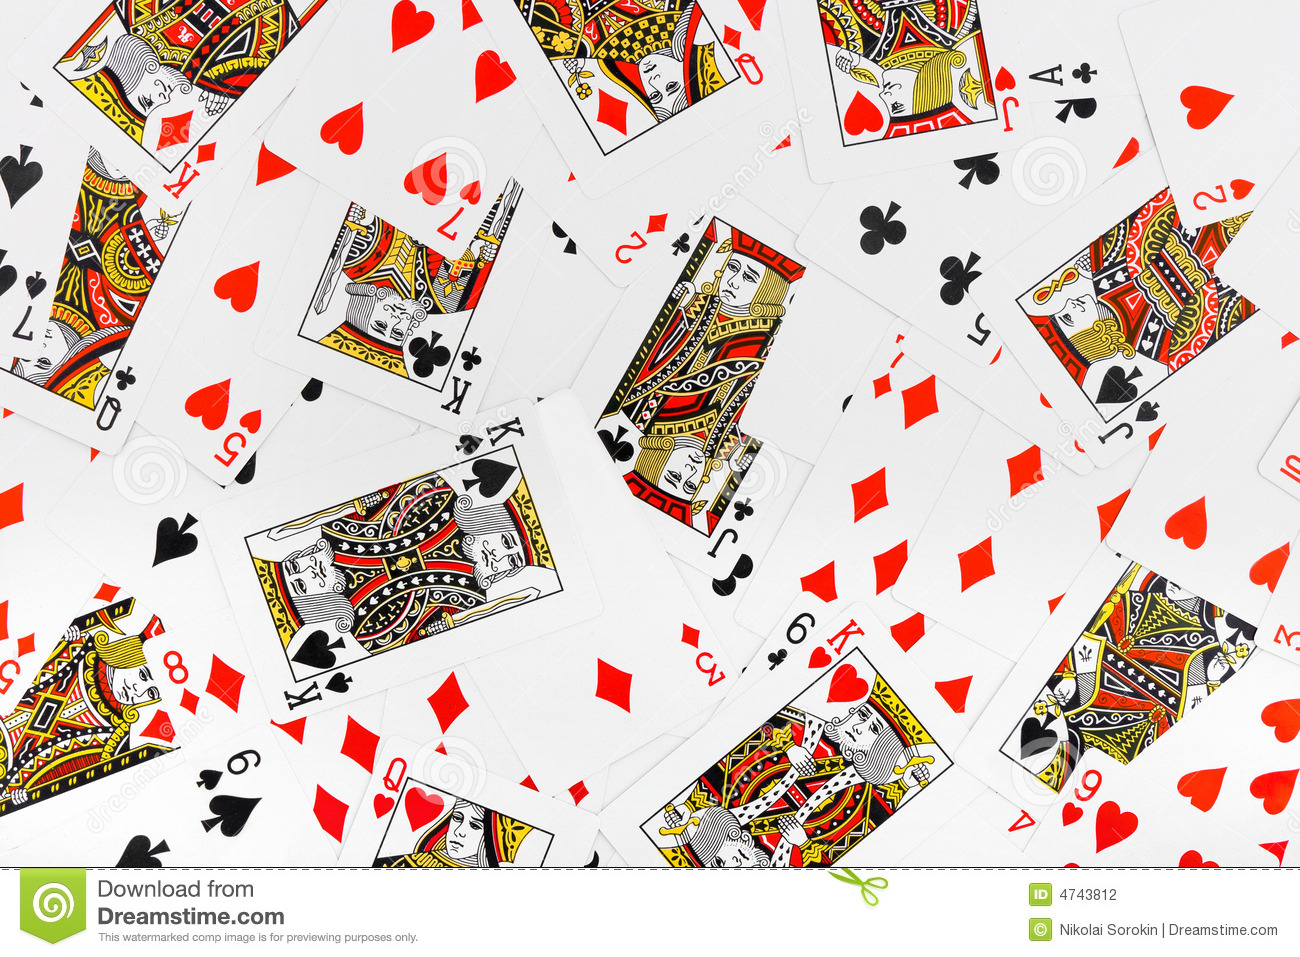 Deck Of Cards Wallpaper Playing cards backgroundDeck Of Cards Wallpaper